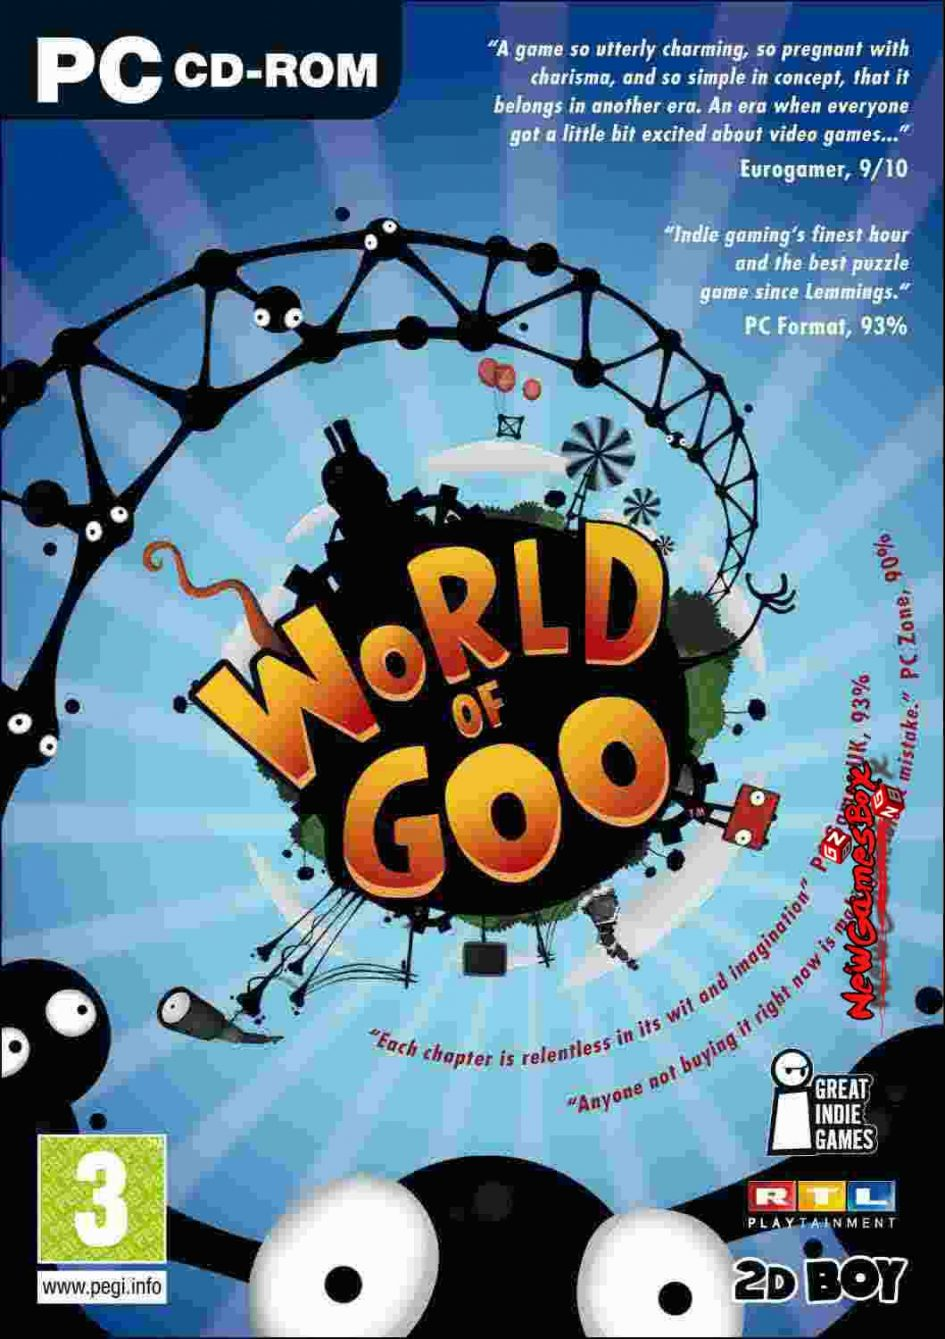 World of goo for android download apk free.